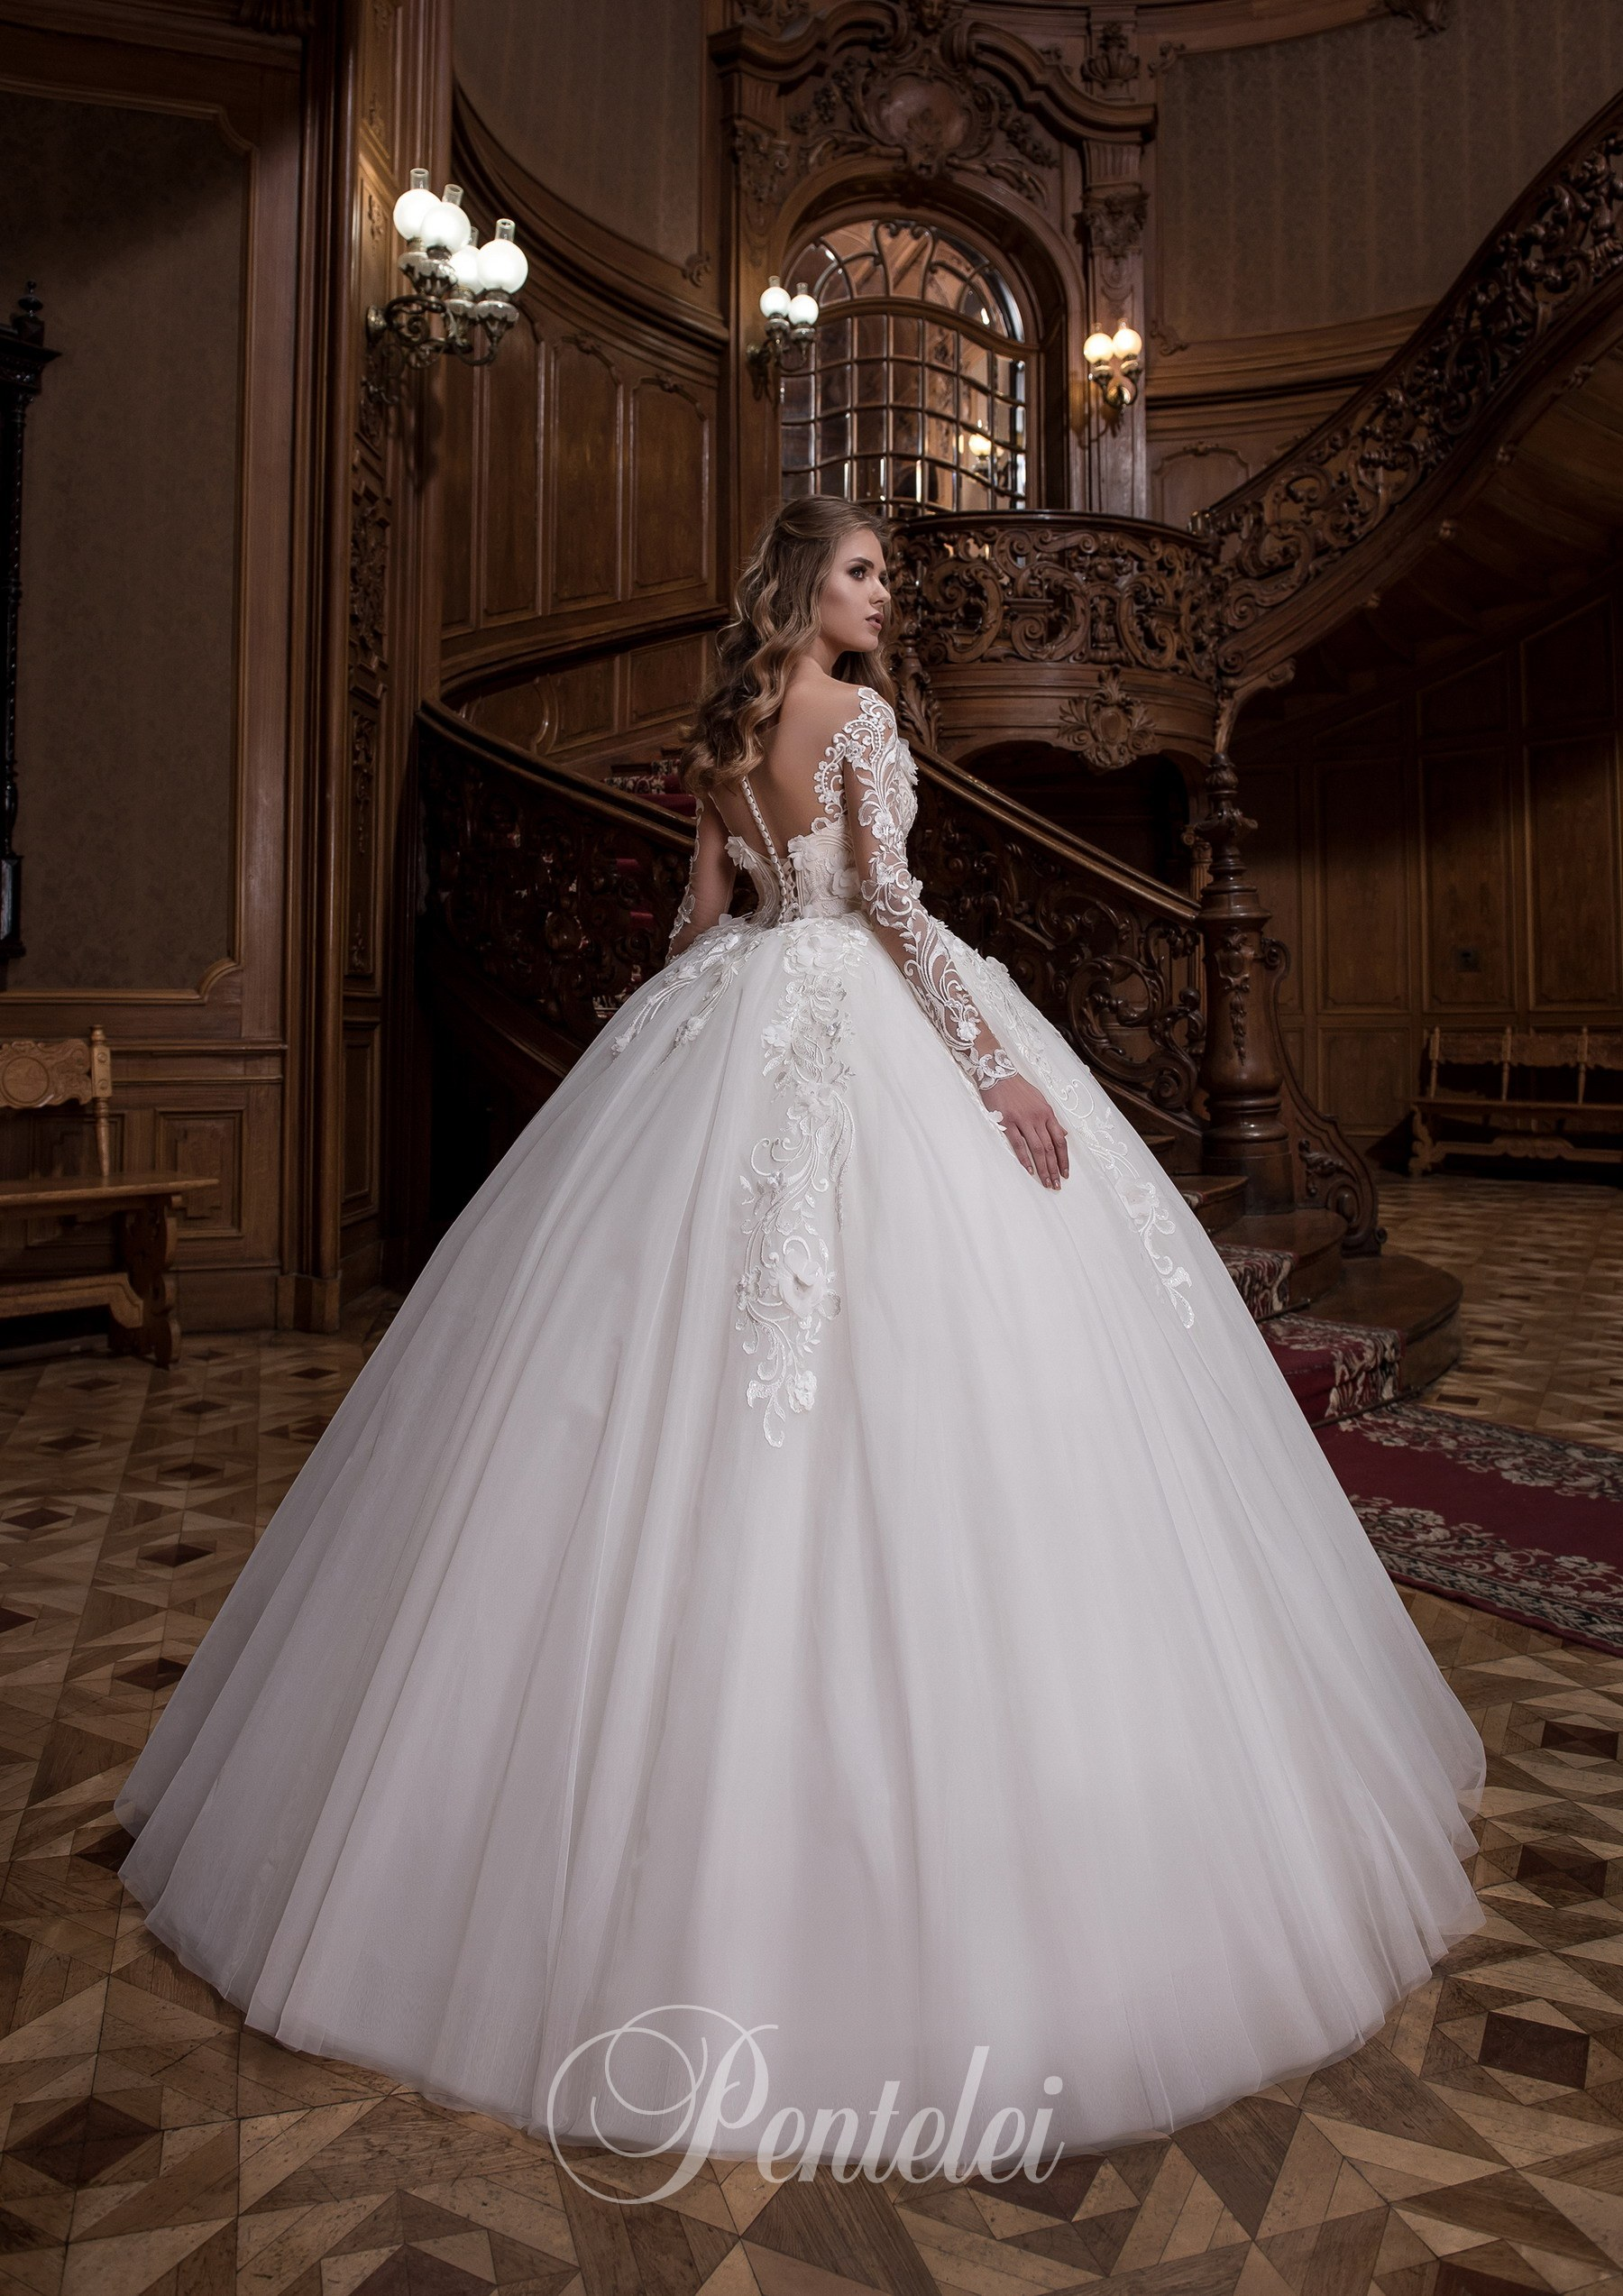 1710 | Buy wedding dresses wholesale from Pentelei